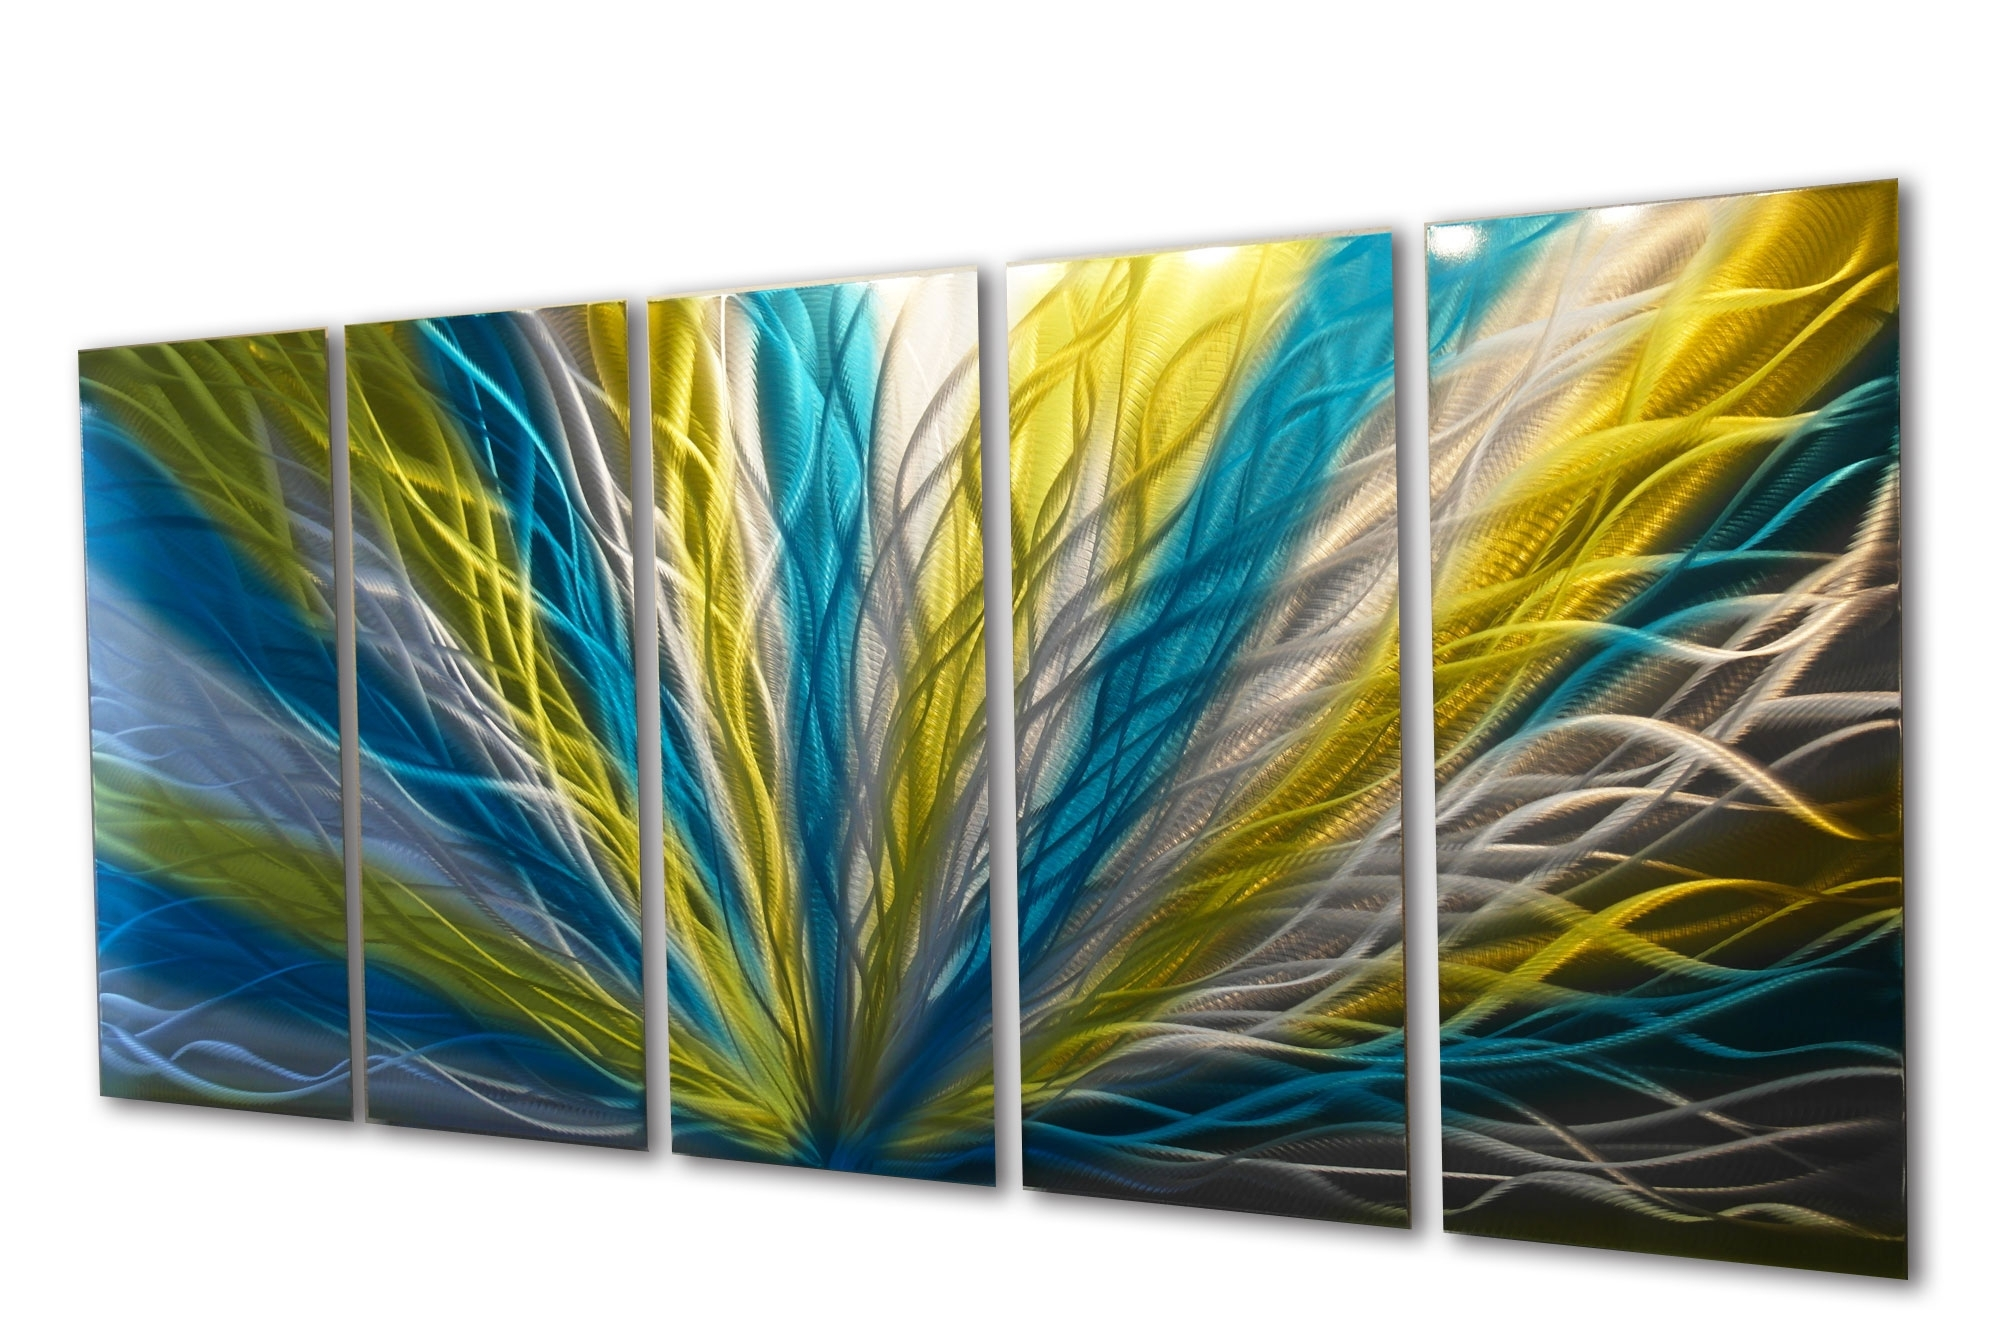 Radiance Blue Yellow 36X79 – Metal Wall Art Abstract Sculpture Inside Favorite Yellow And Blue Wall Art (Gallery 4 of 15)